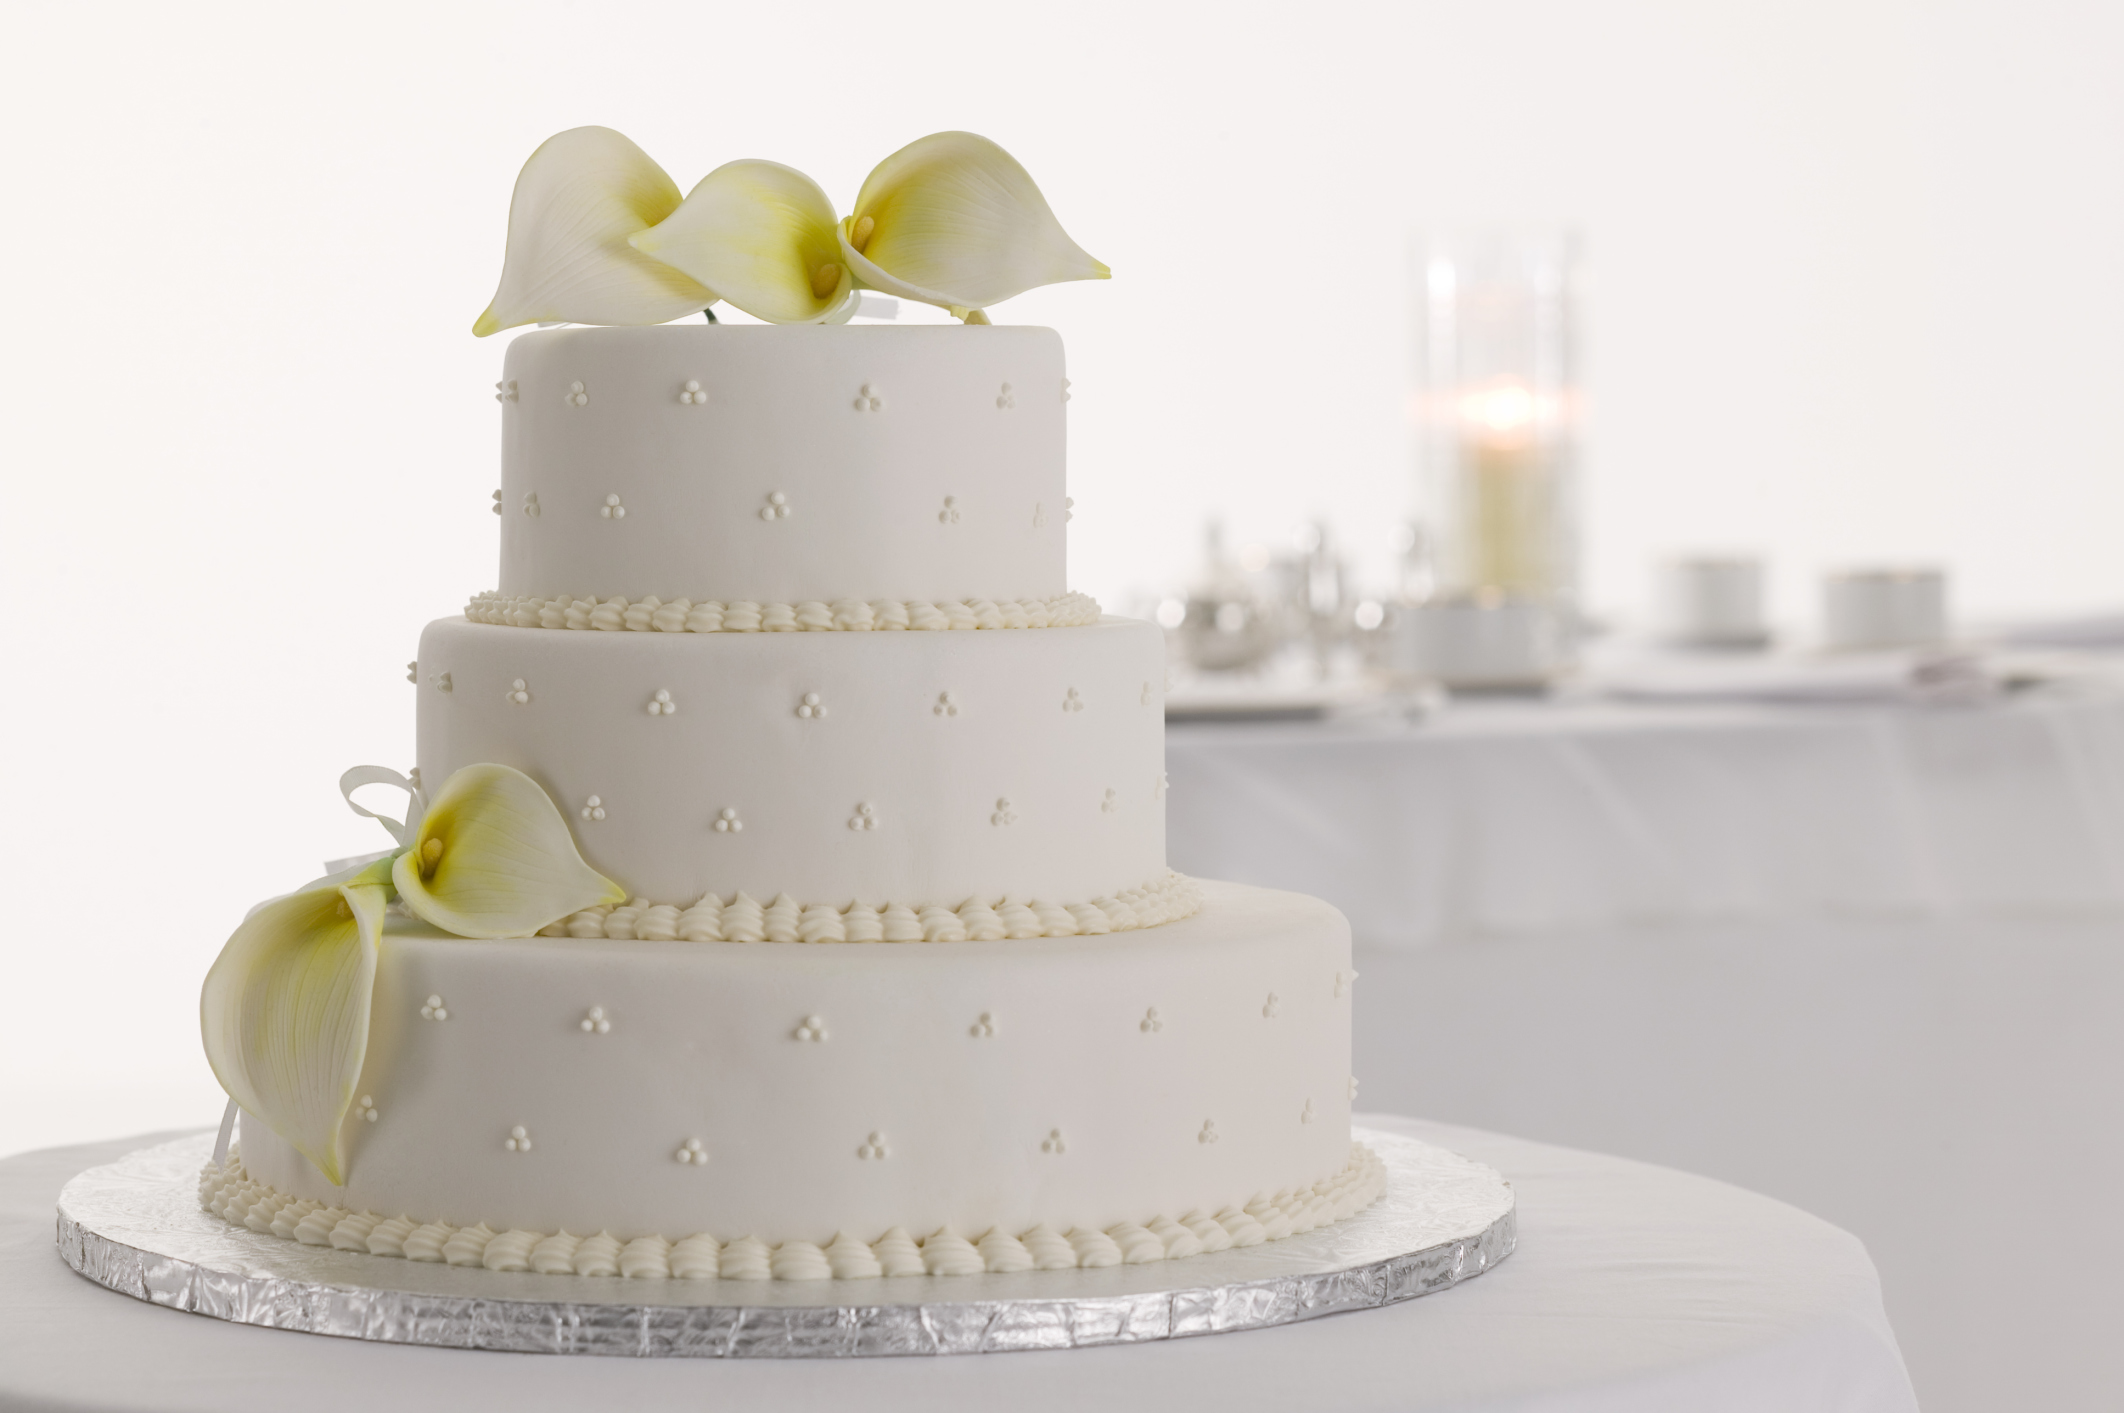 How To Make Your Own Wedding Cake With Fondant